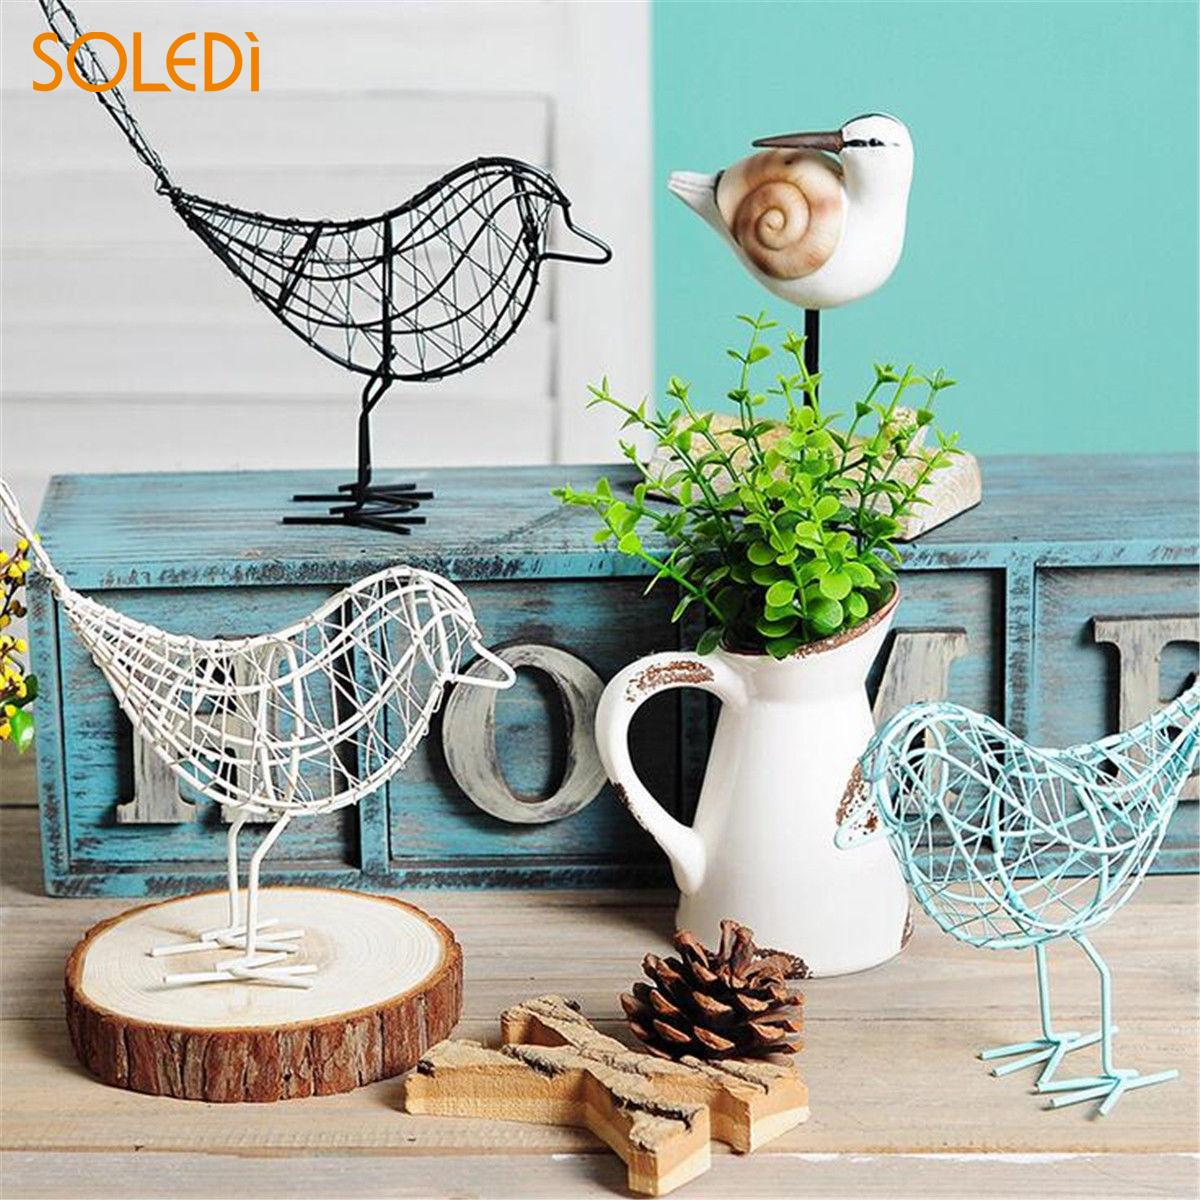 Fashionable Metal Wire Iron Bird Craft Iron Wire Bird Beautiful Iron White/Black/Blue Decoration Gift Office Desktop Ornament